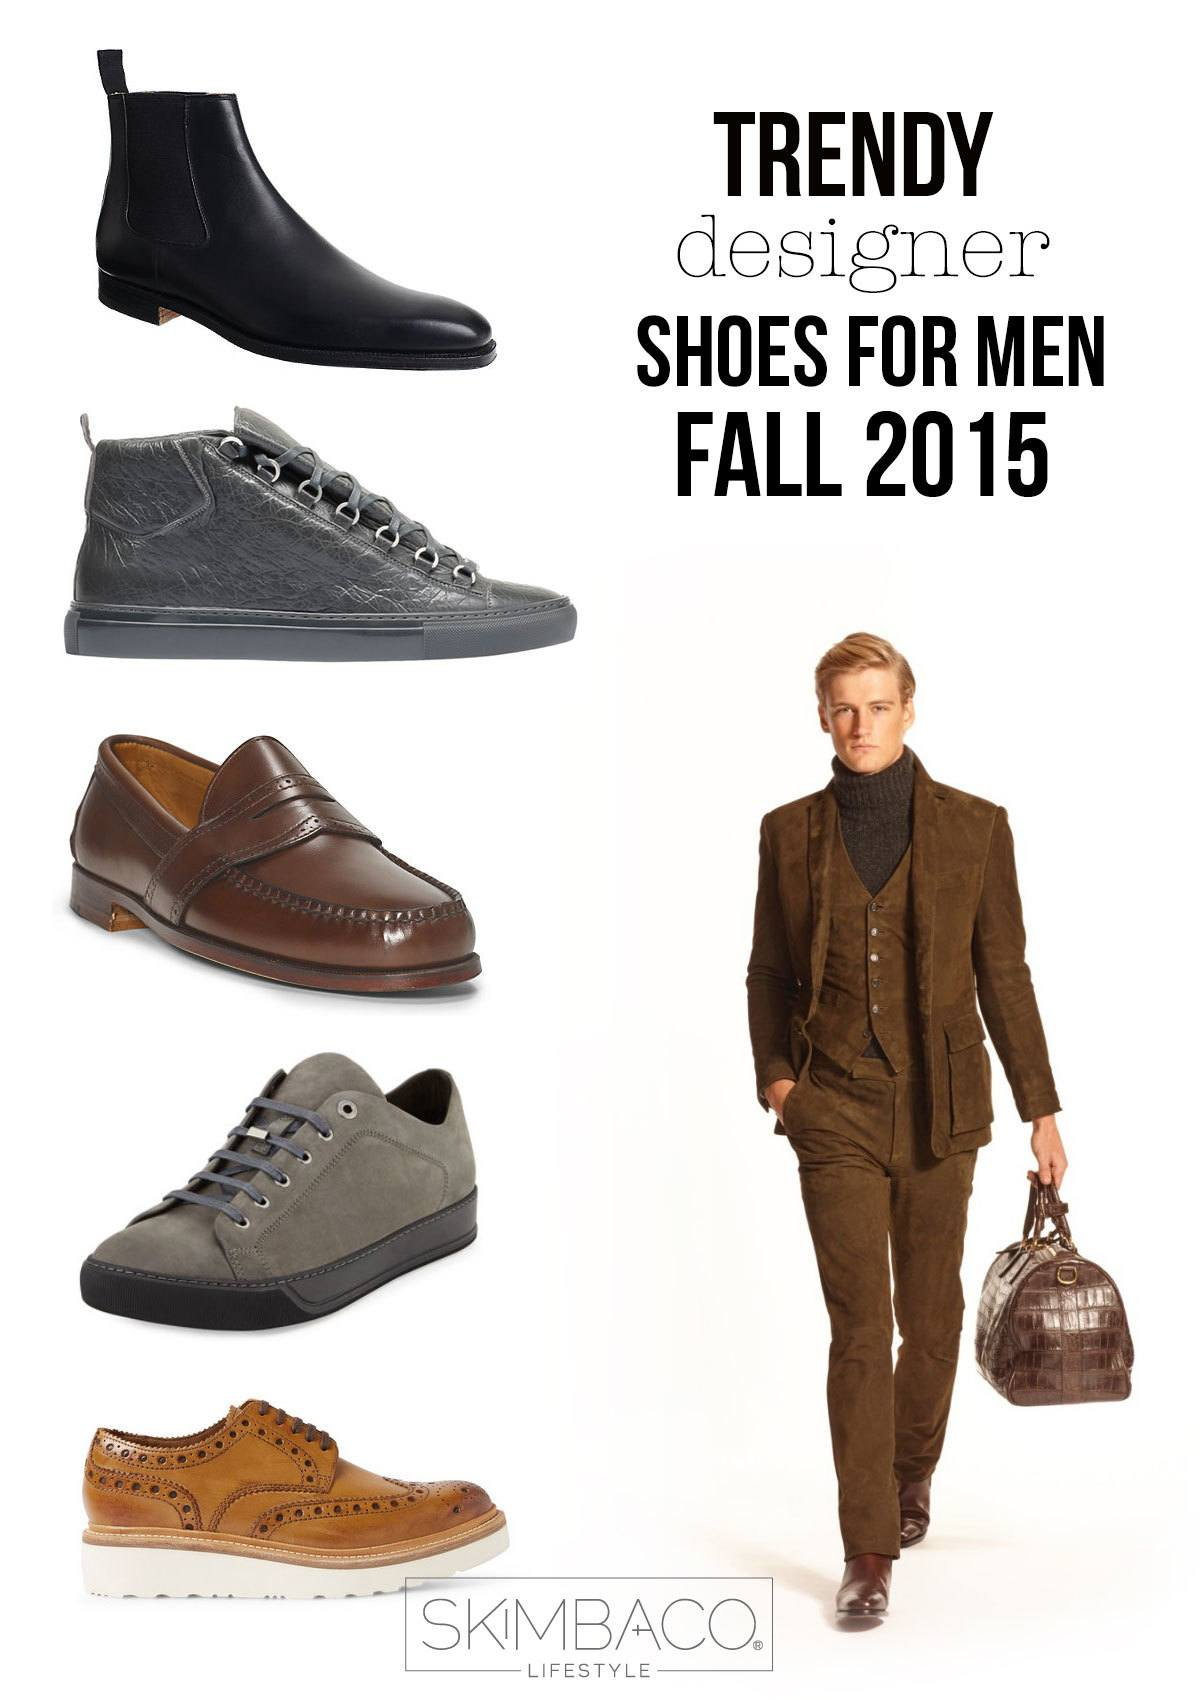 For Men: 5 Must-Have Shoe Styles for Fall 2015